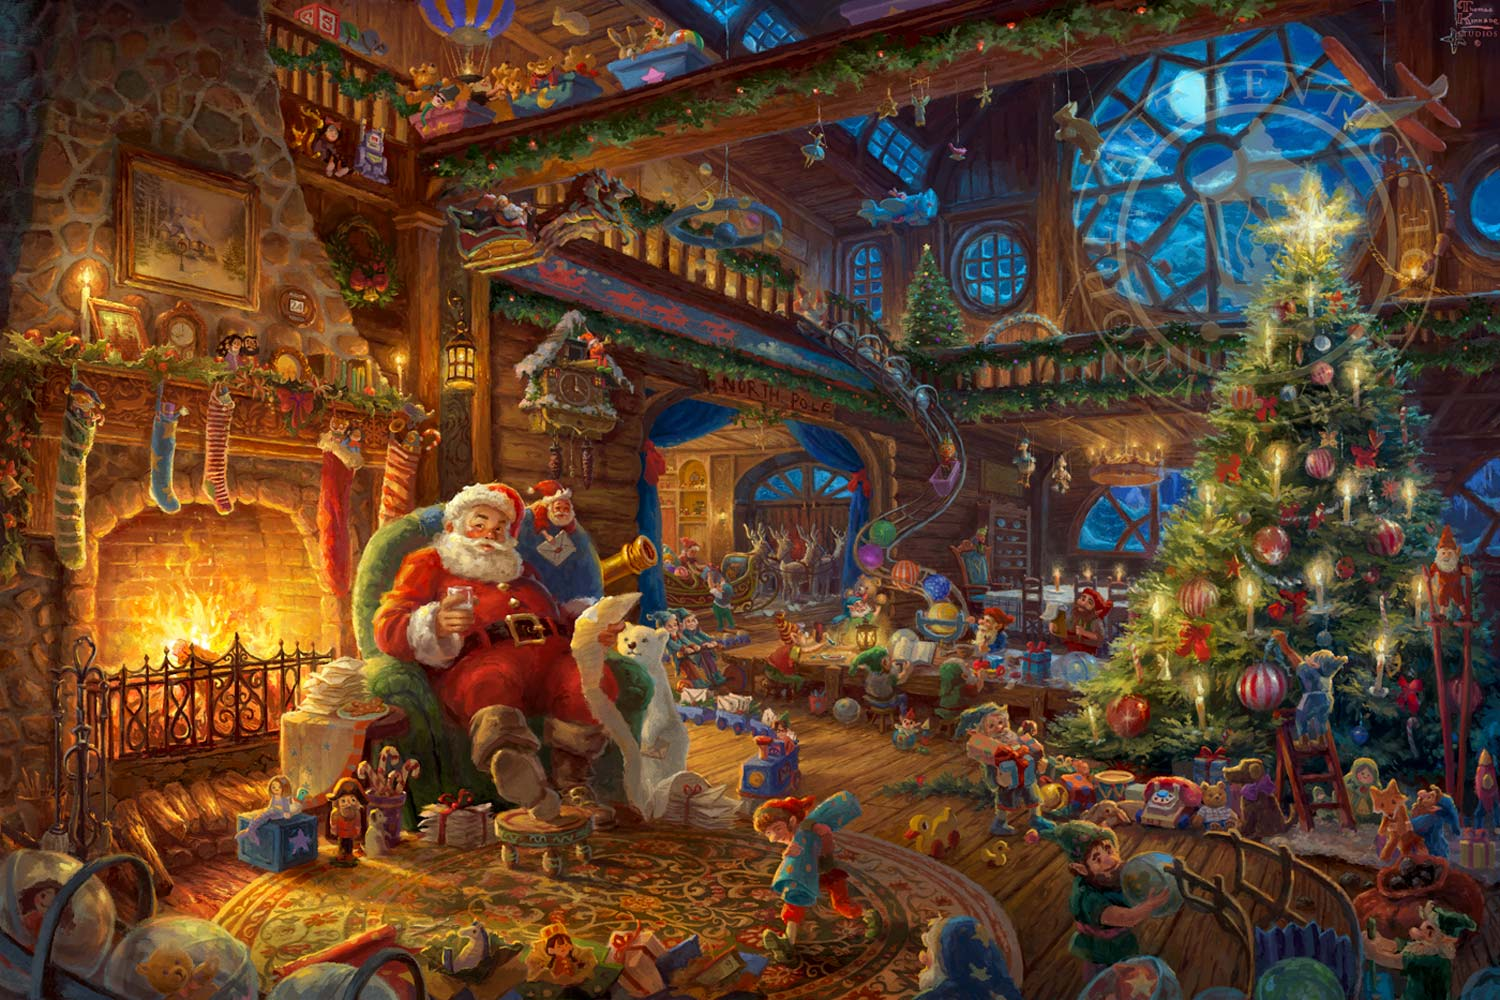 Justice League Movie Hd Wallpapers Santa S Workshop The Thomas Kinkade Company